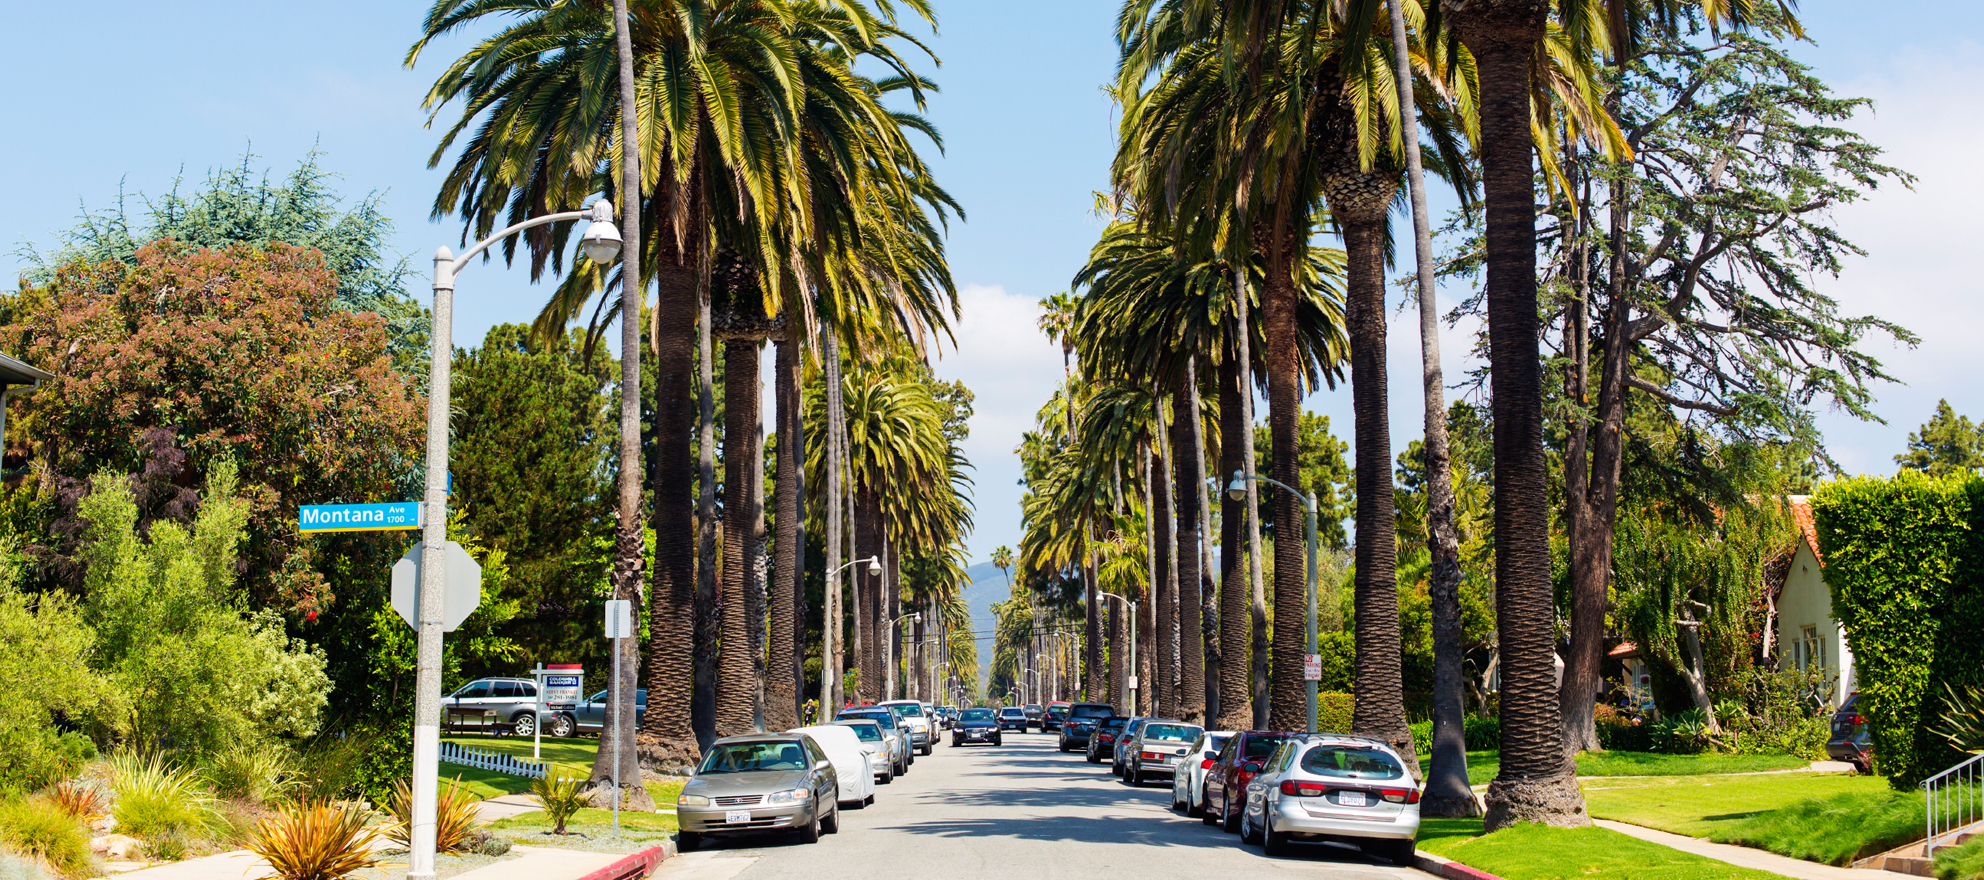 LA home prices are on the rise, says Black Knight